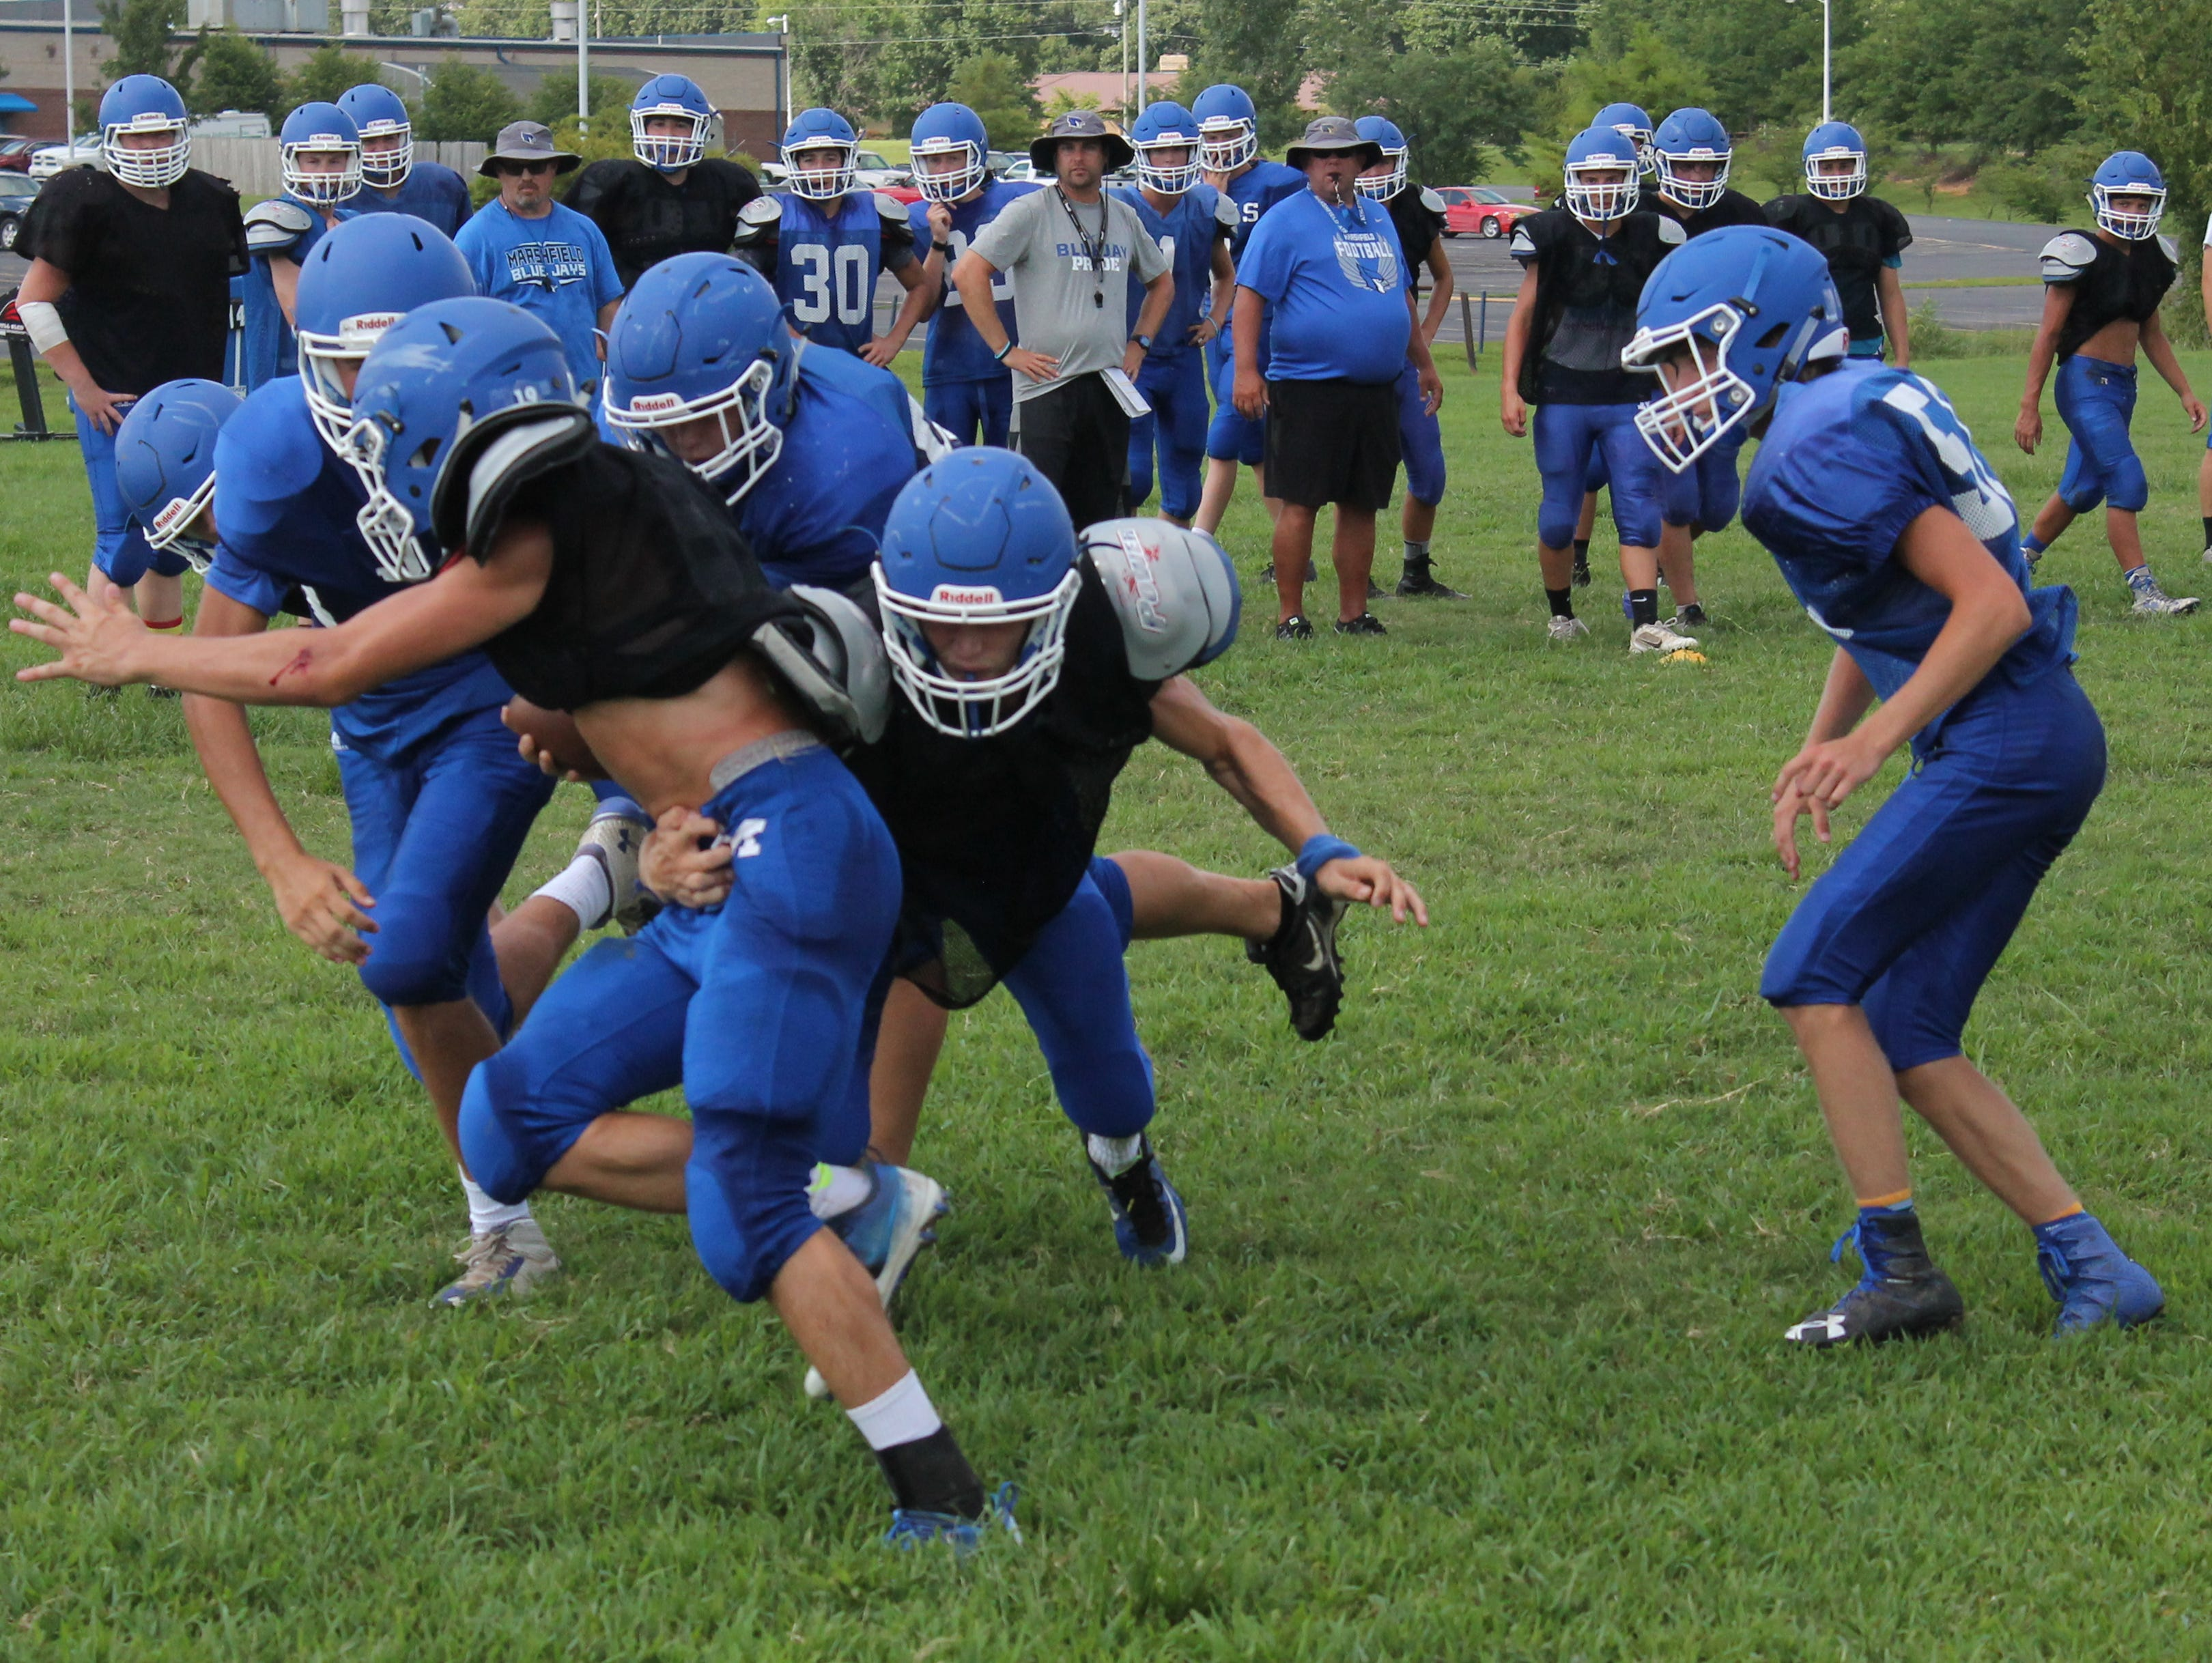 Marshfield's Chris Crotinger tackles a teammate during a practice drill Aug. 8, 2016 at Marshfield High School.